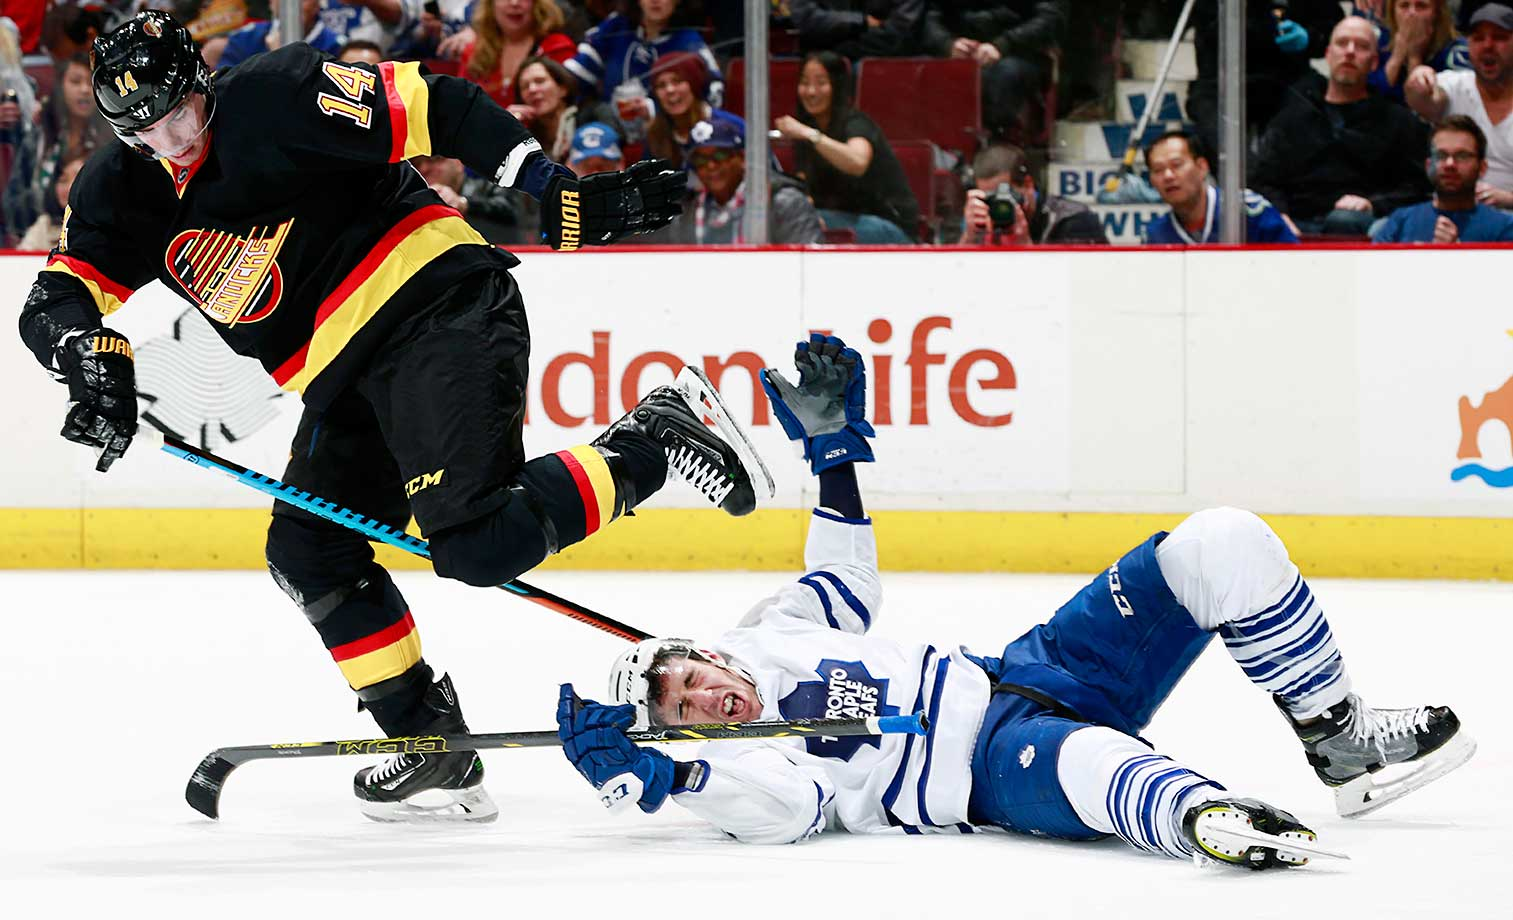 Alexandre Burrows of the Vancouver Canucks skates away after checking Frank Corrado of the Toronto Maple Leafs.